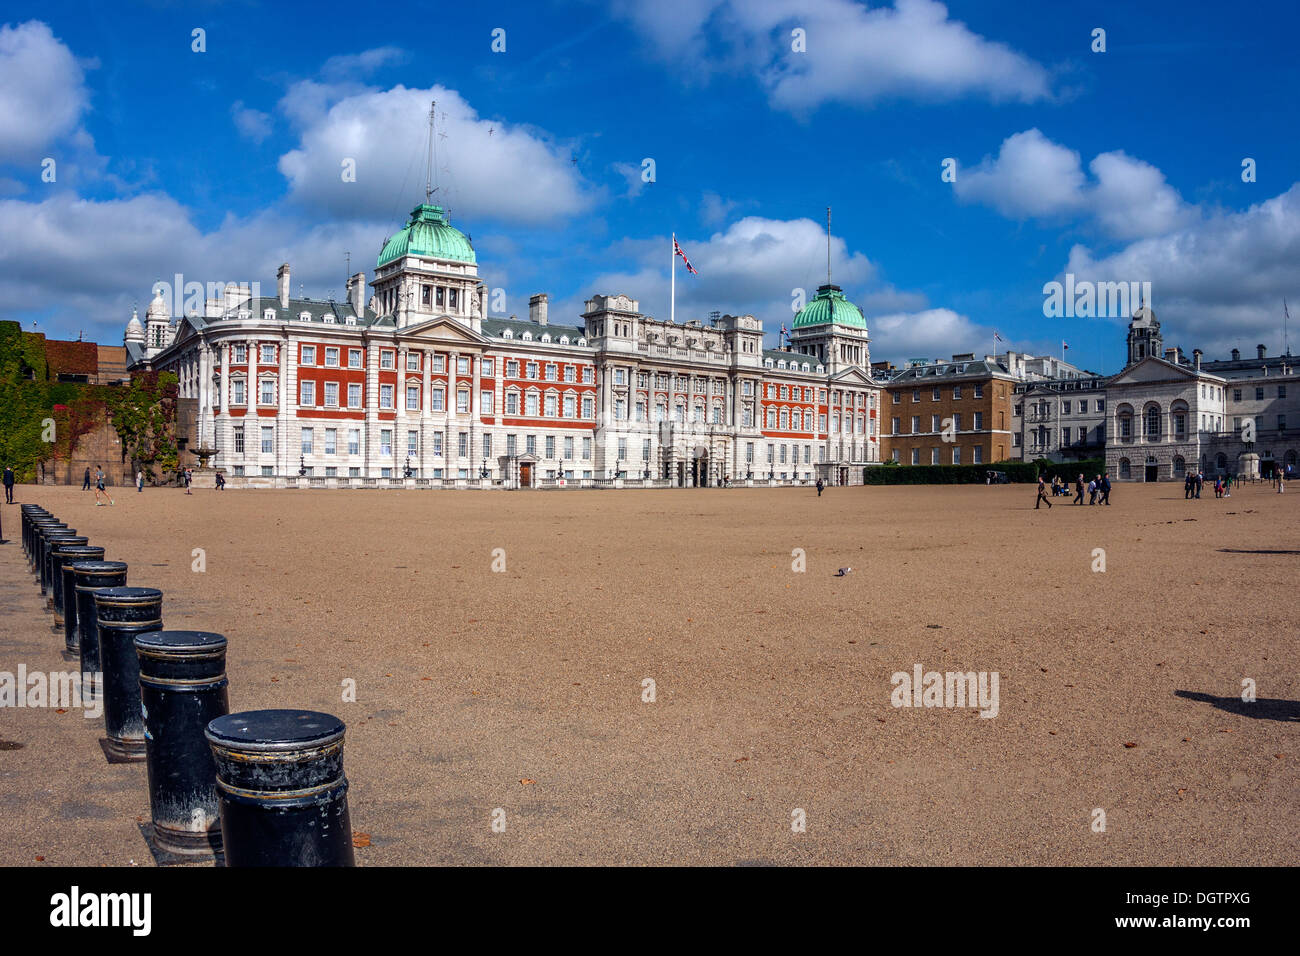 Horse Guards Parade and Ministry of Defence, London - Stock Image